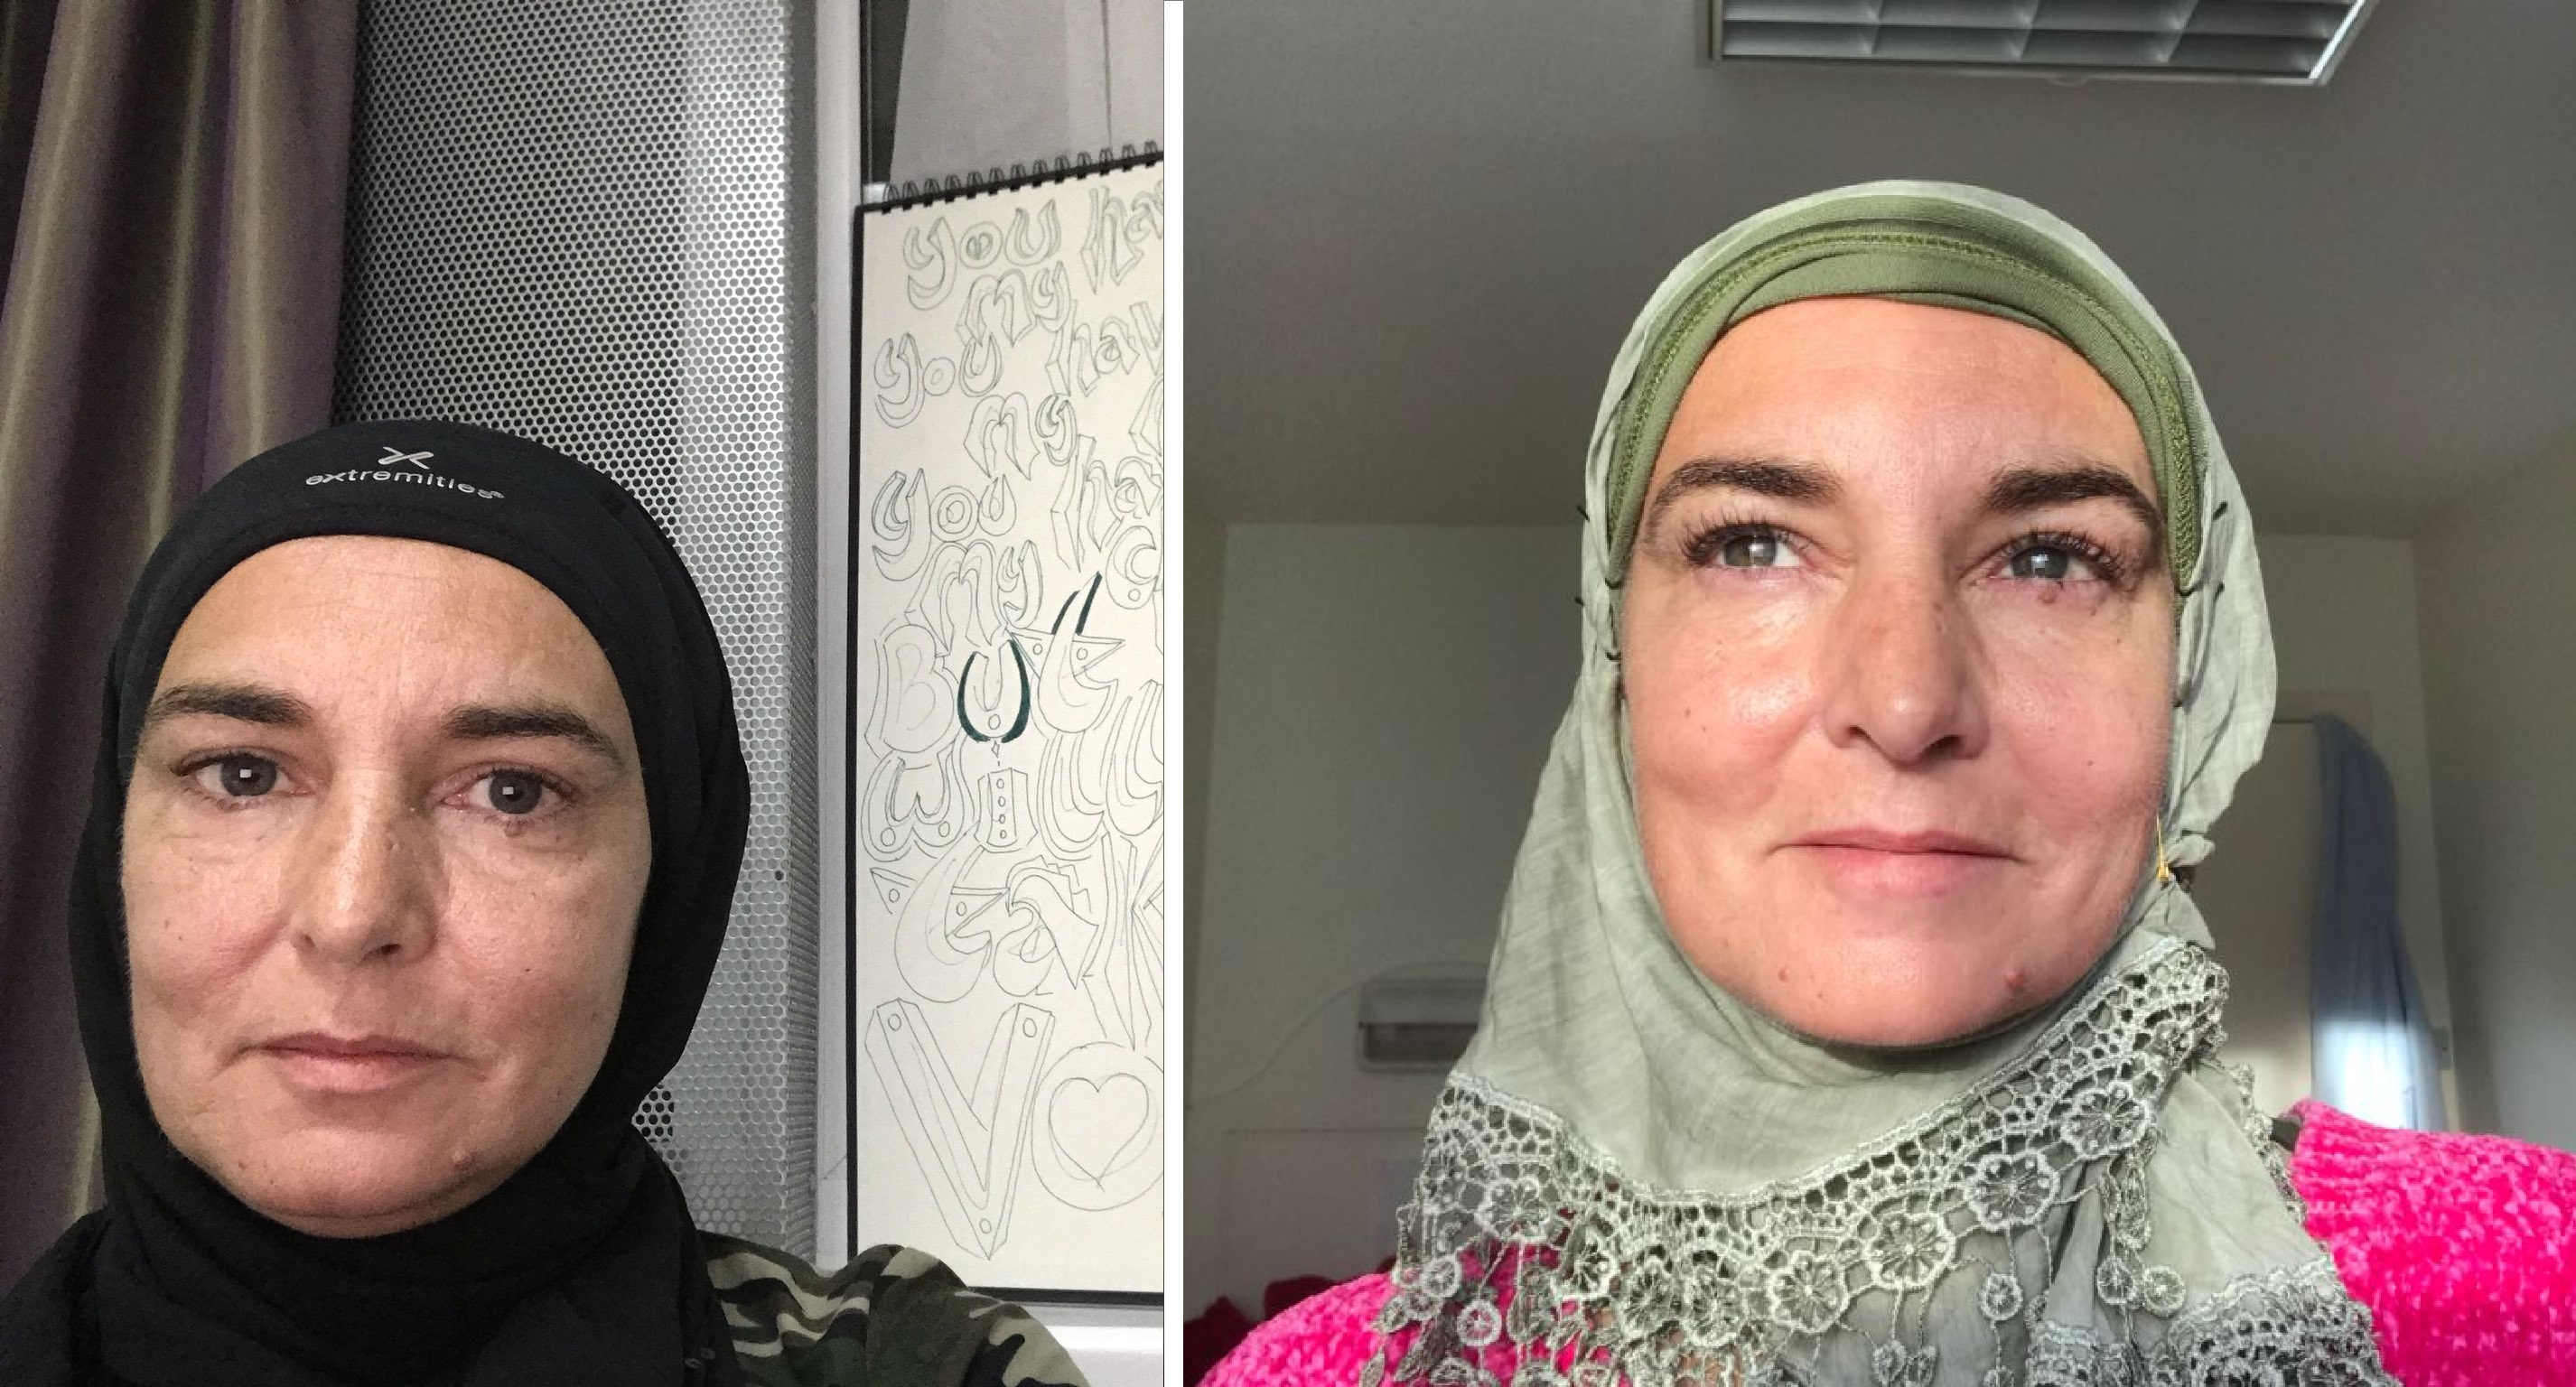 Sinead O'Connor Converts to Islam. Gives Herself This New Name…